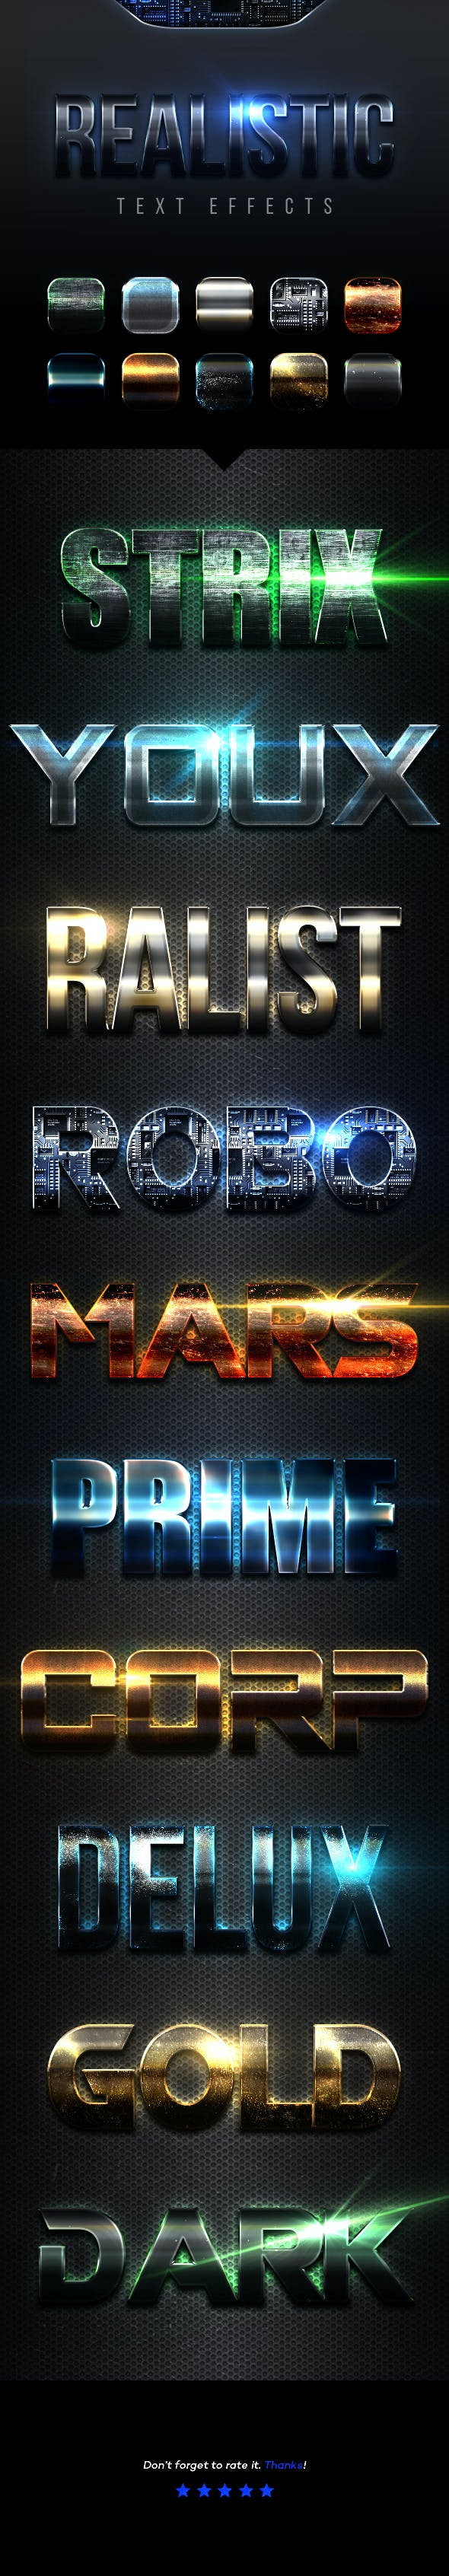 Realistic Text Effects Vol.1 - Text Effects Styles